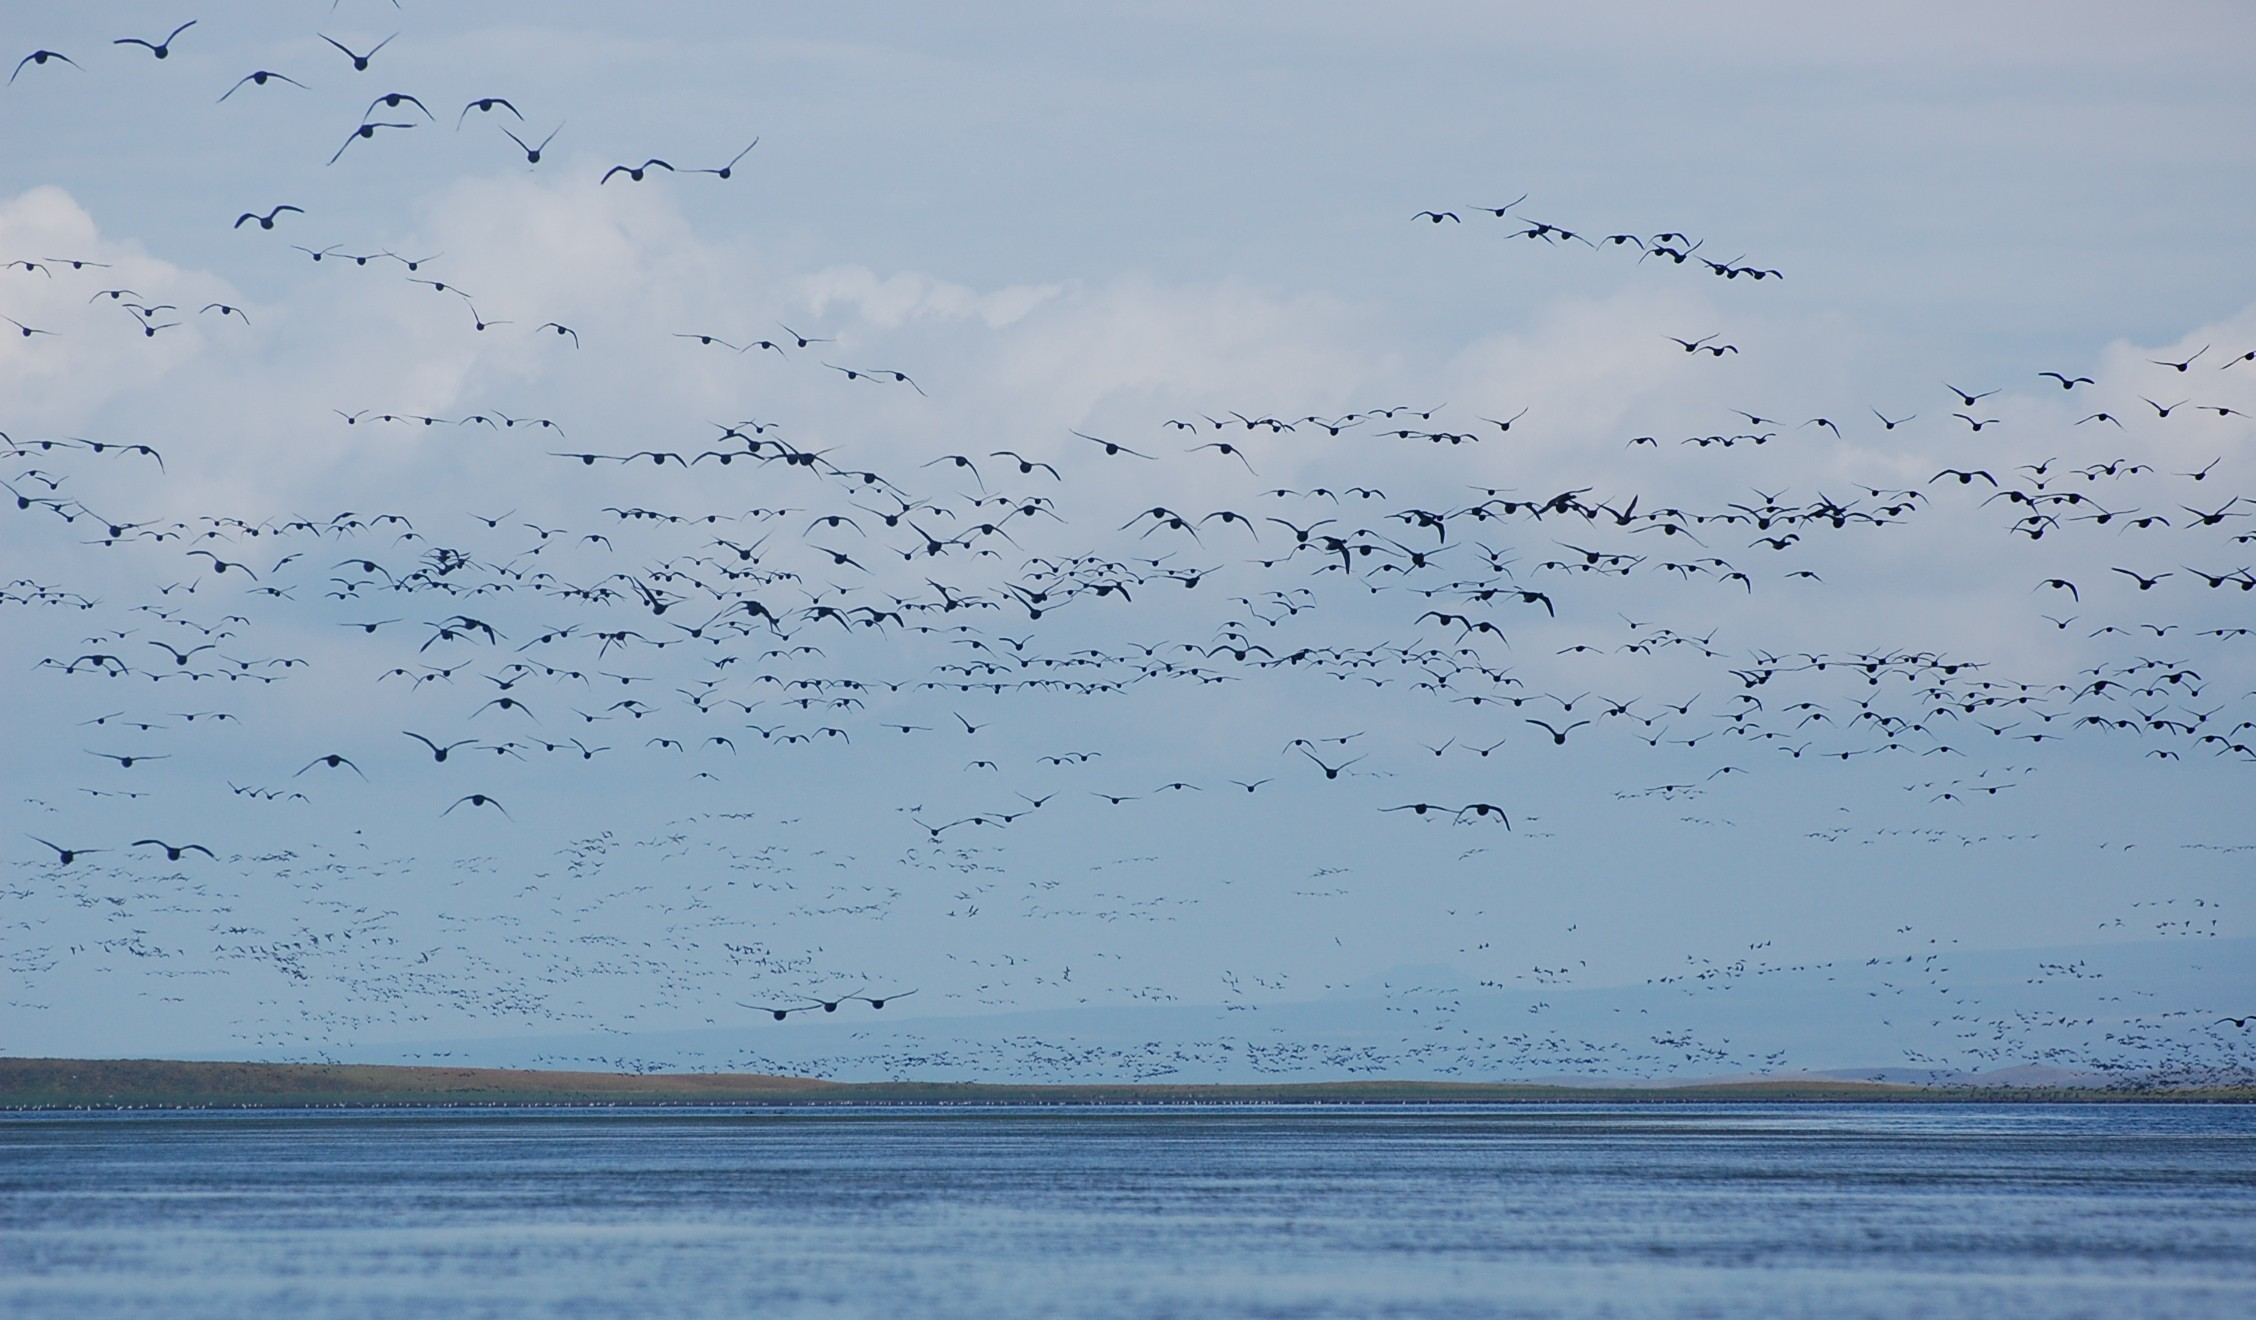 flying black brant flood the sky over a body of water